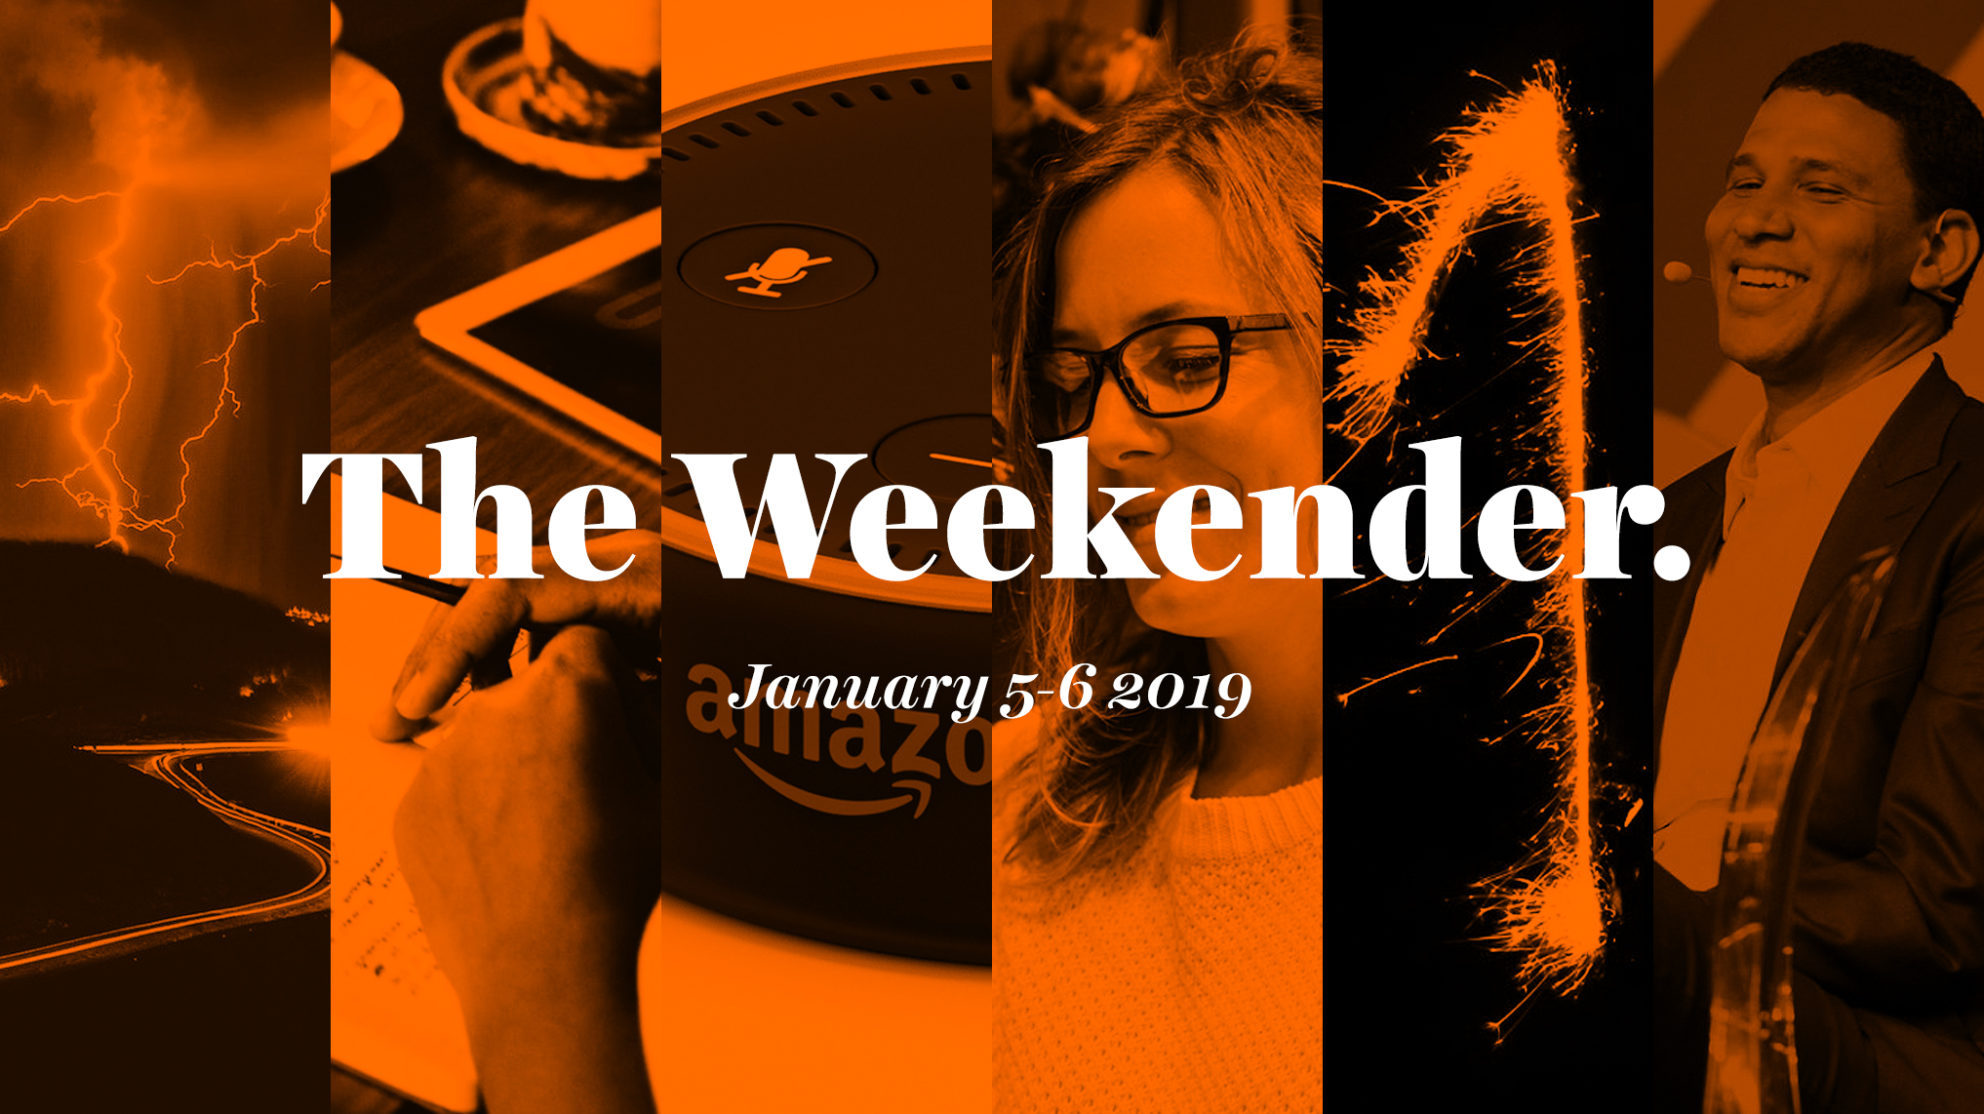 The Inman Weekender, January 5-6, 2019